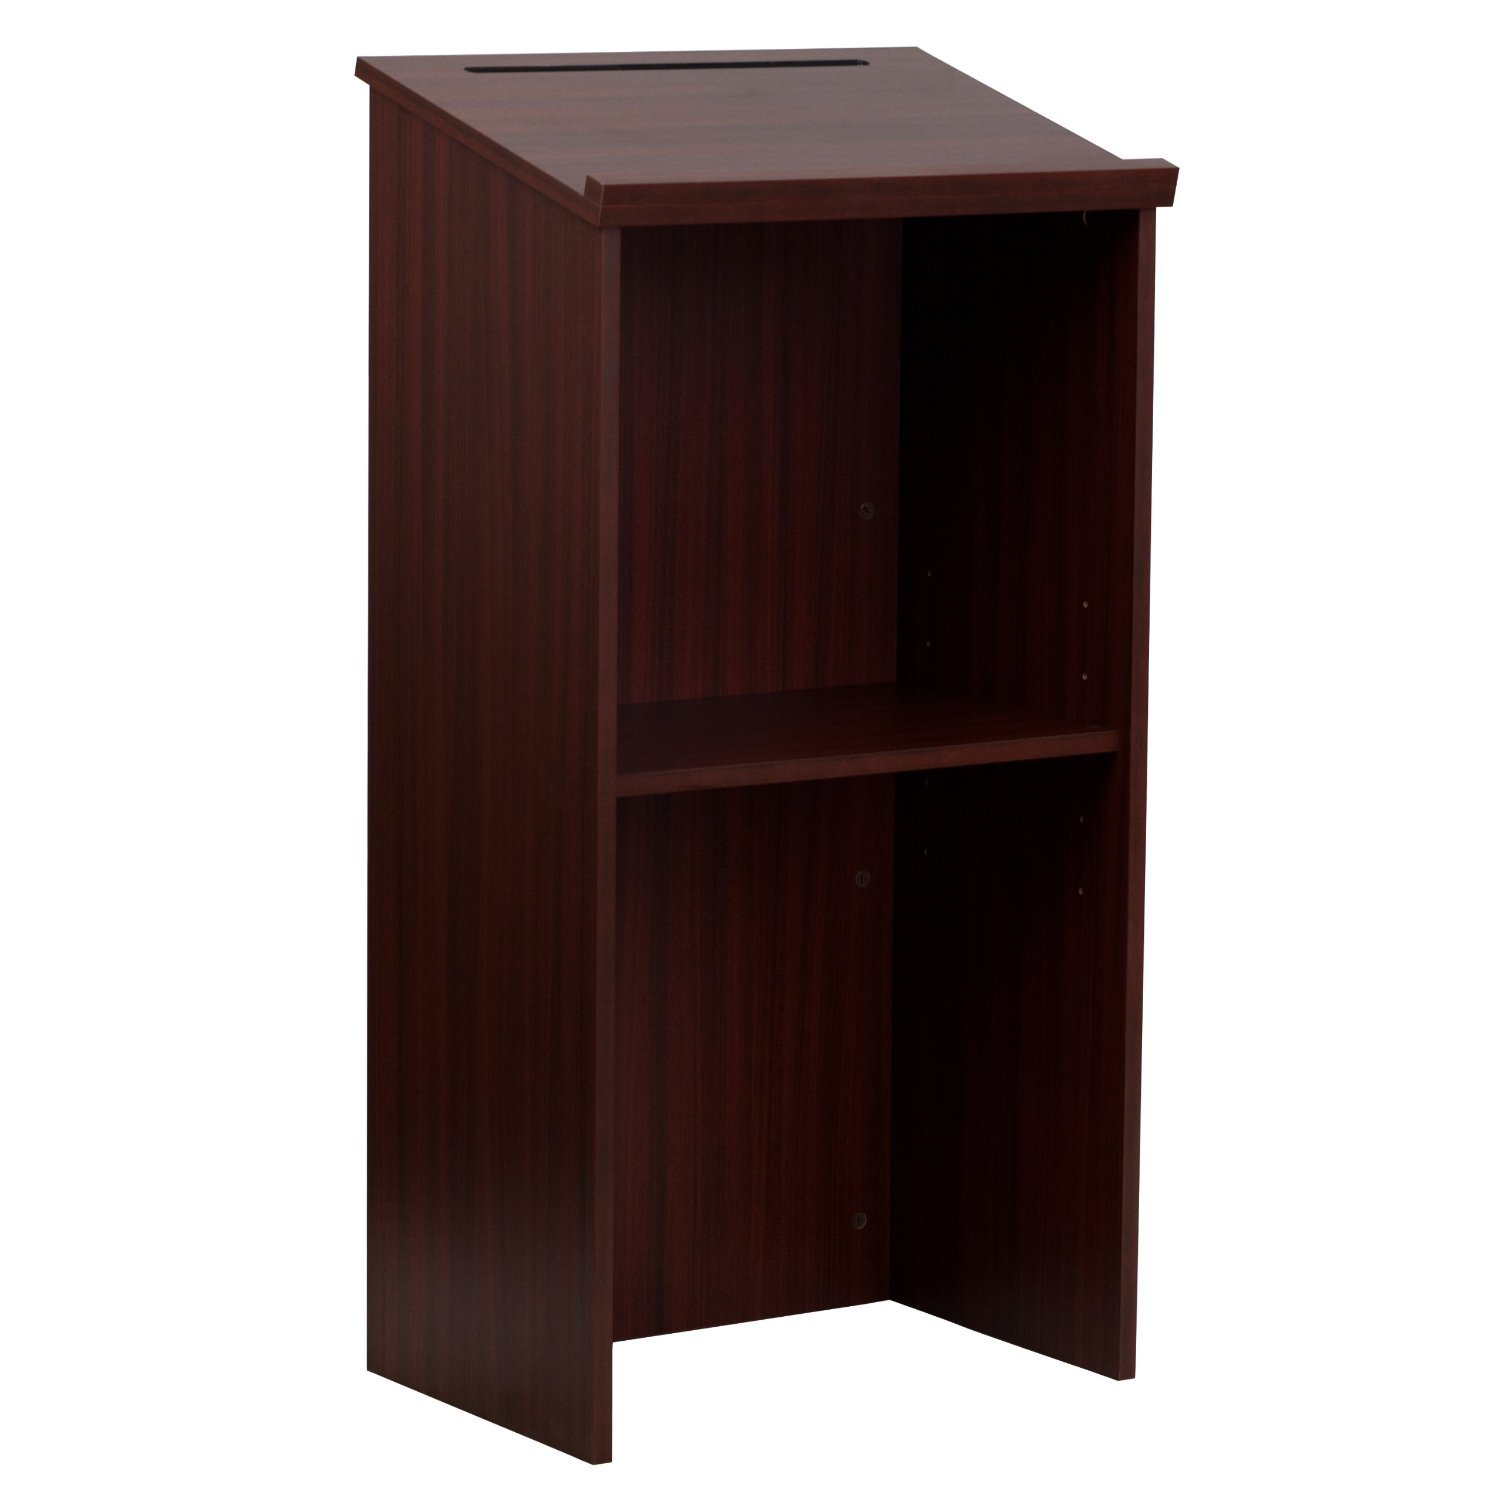 AdirOffice Stand up, Floor-Standing Podium, Lectern with Adjustable Shelf and Pen/Pencil Tray (Mahogany) by AdirOffice